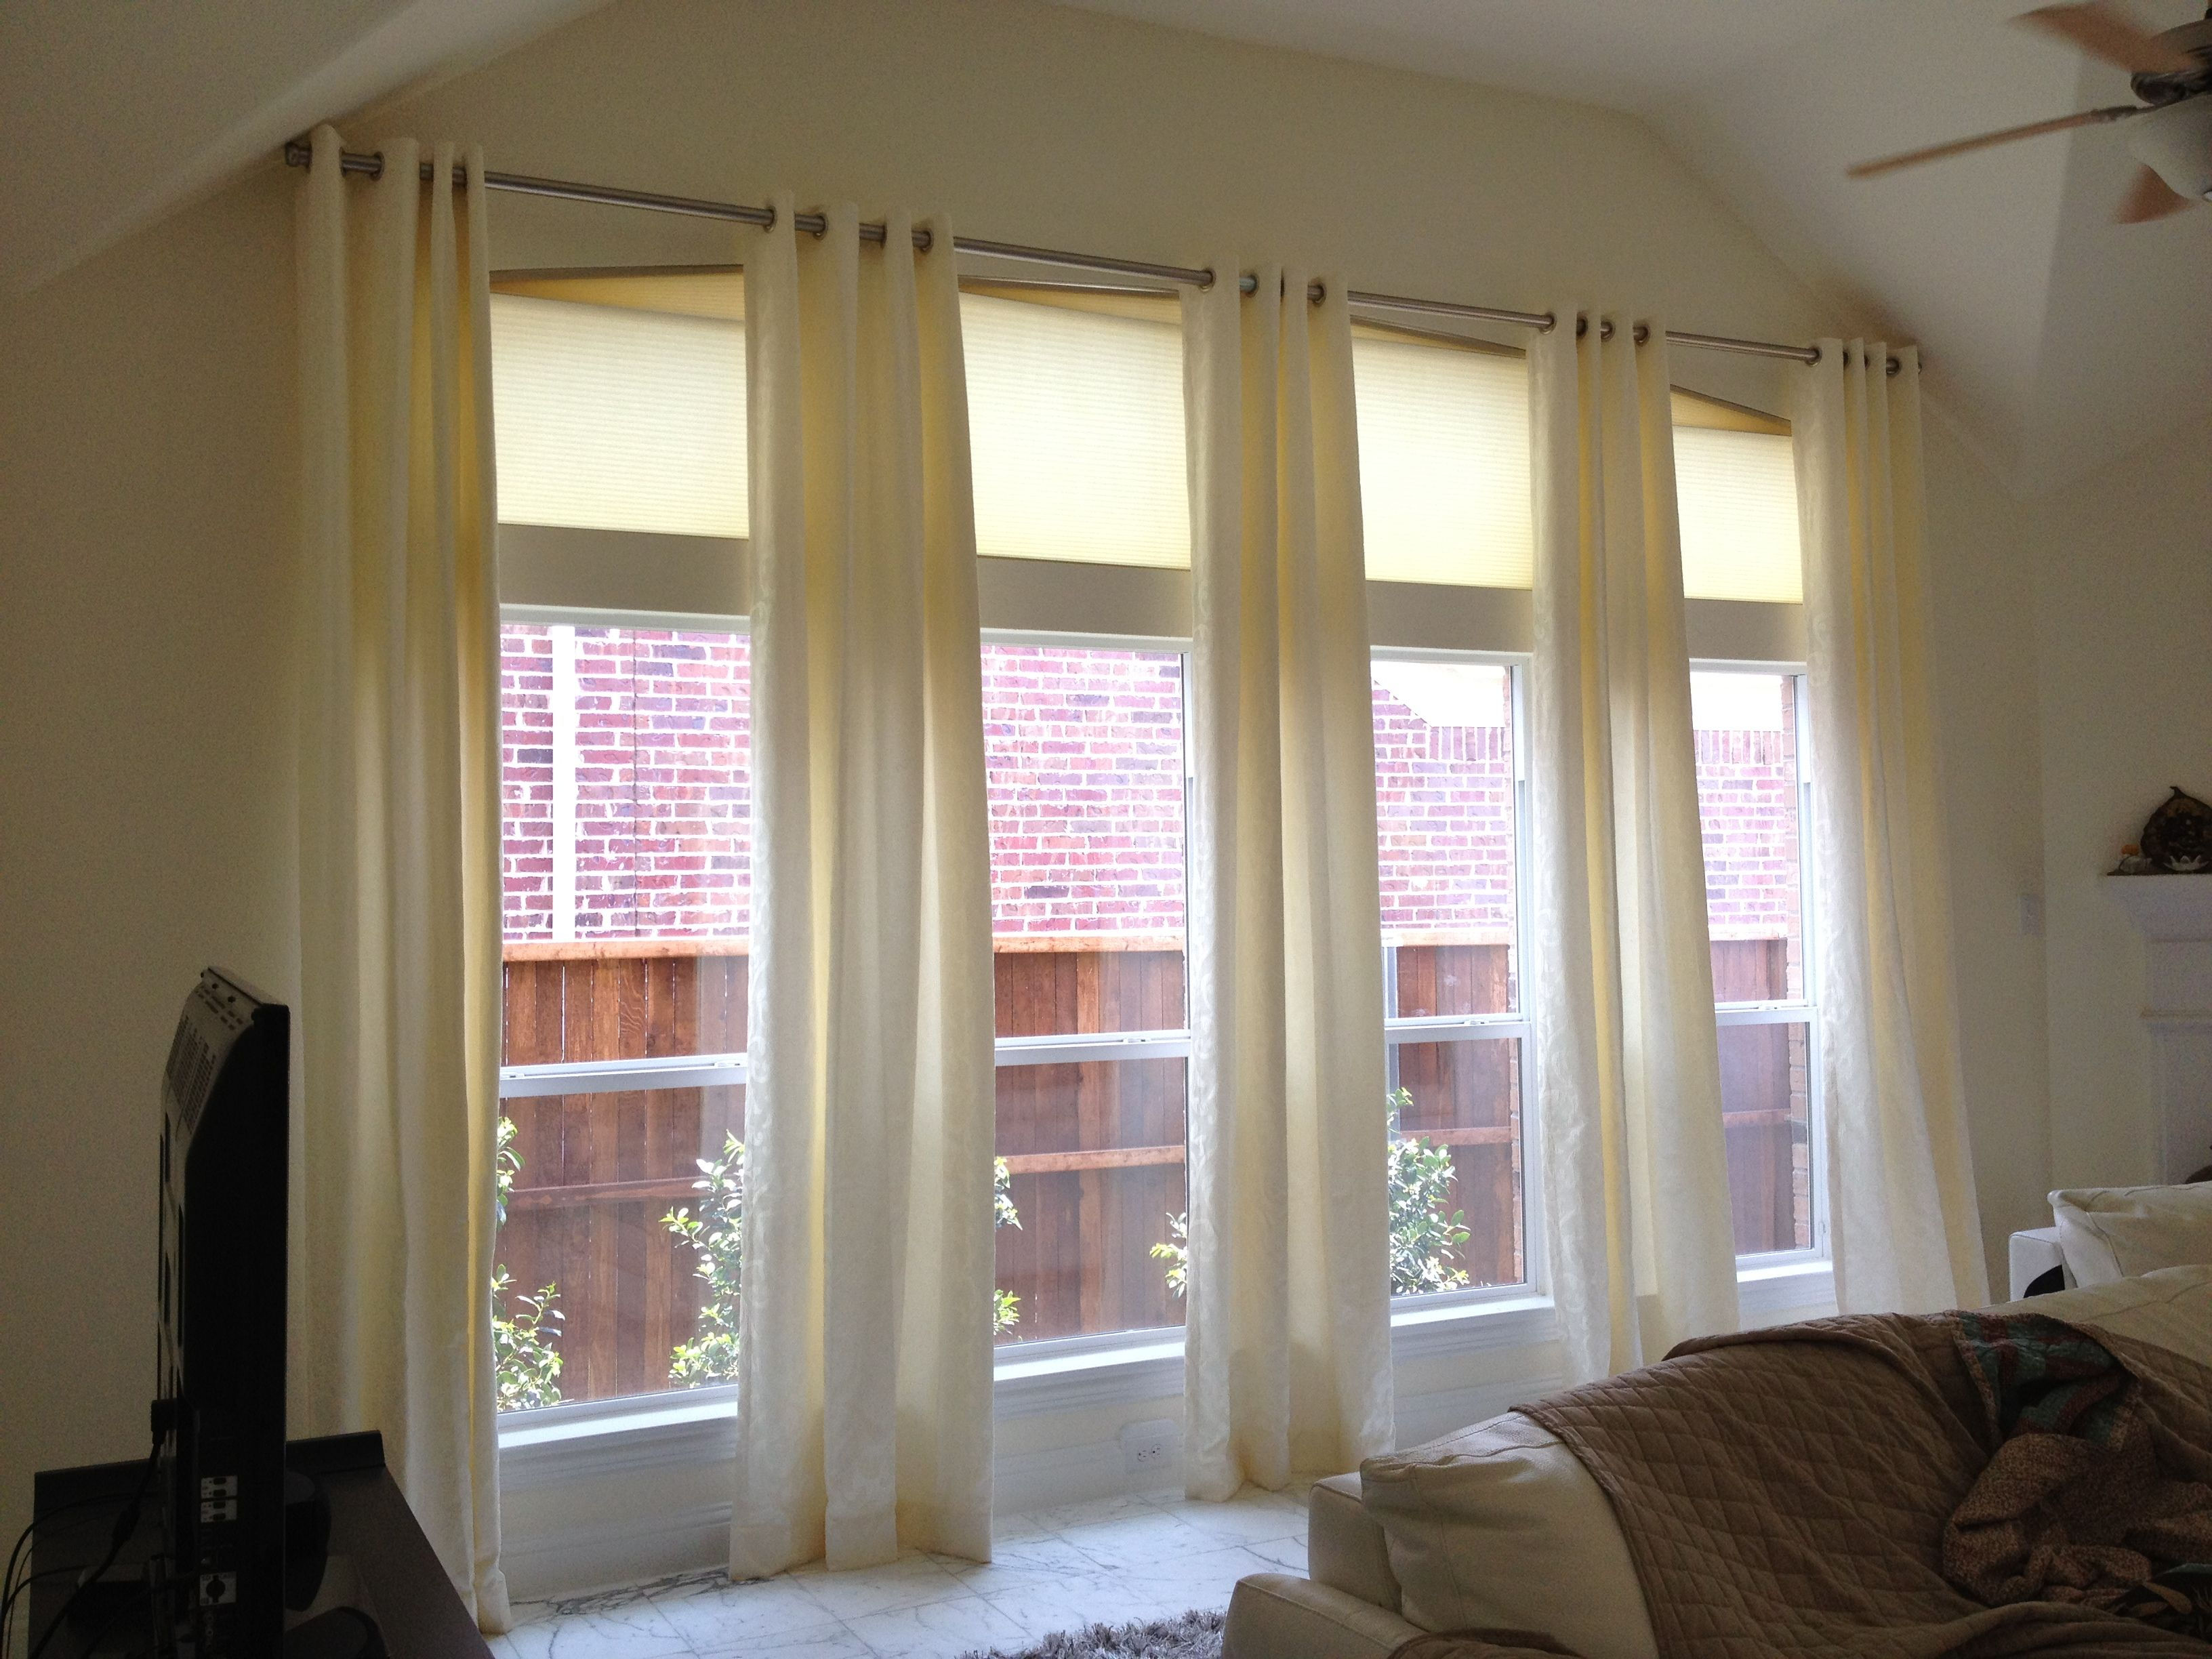 Grommet Paneled Drapes Bring Warmth To These Windows